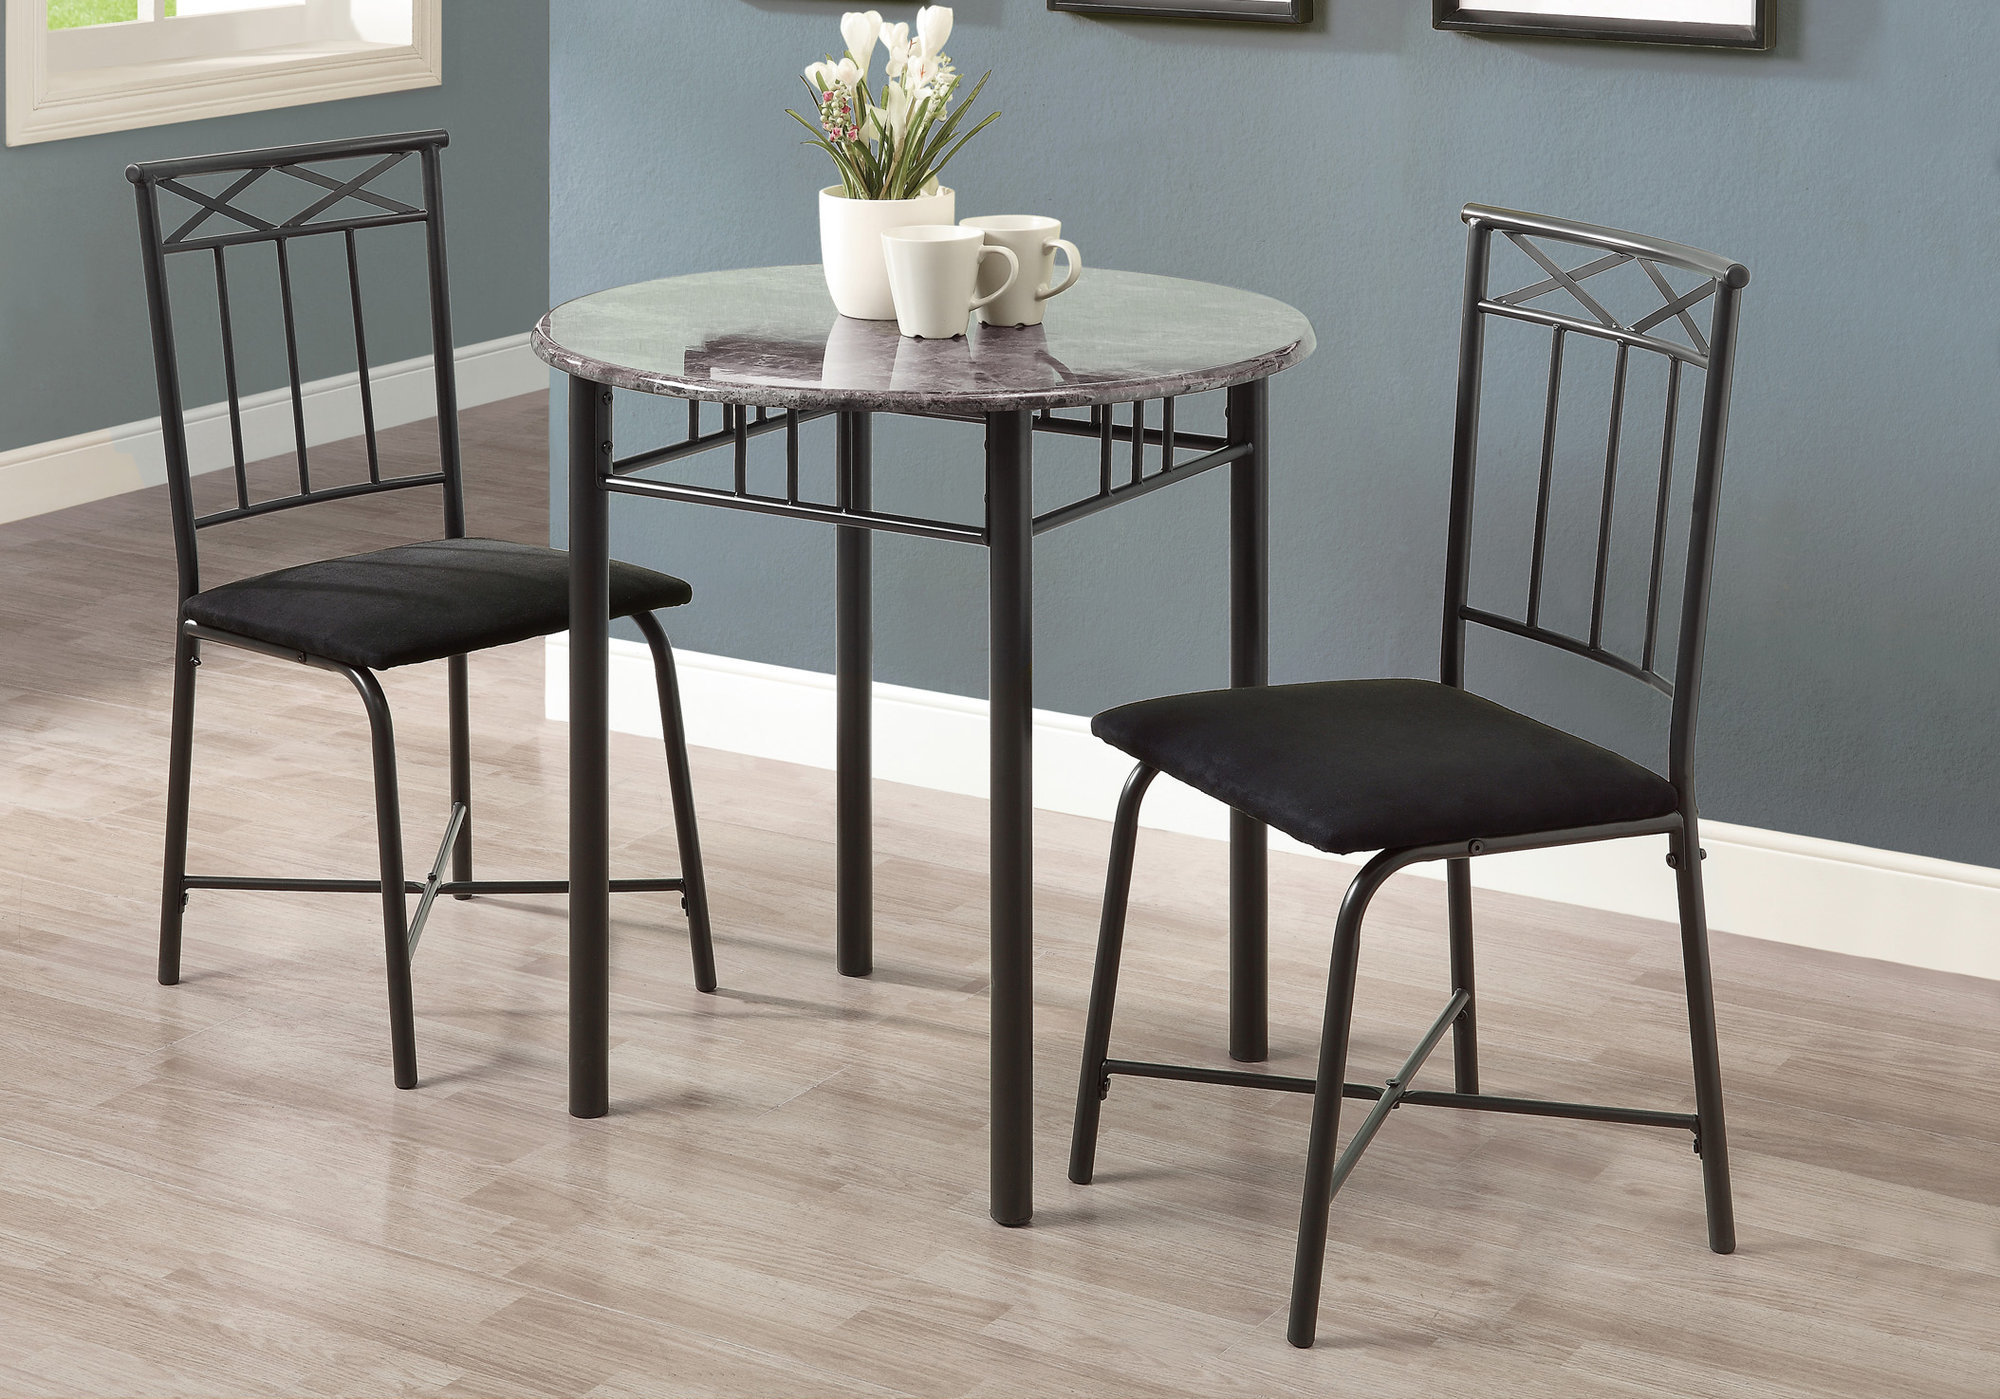 Monarch Dining Set 3Pcs Set / Grey Marble / Charcoal Metal